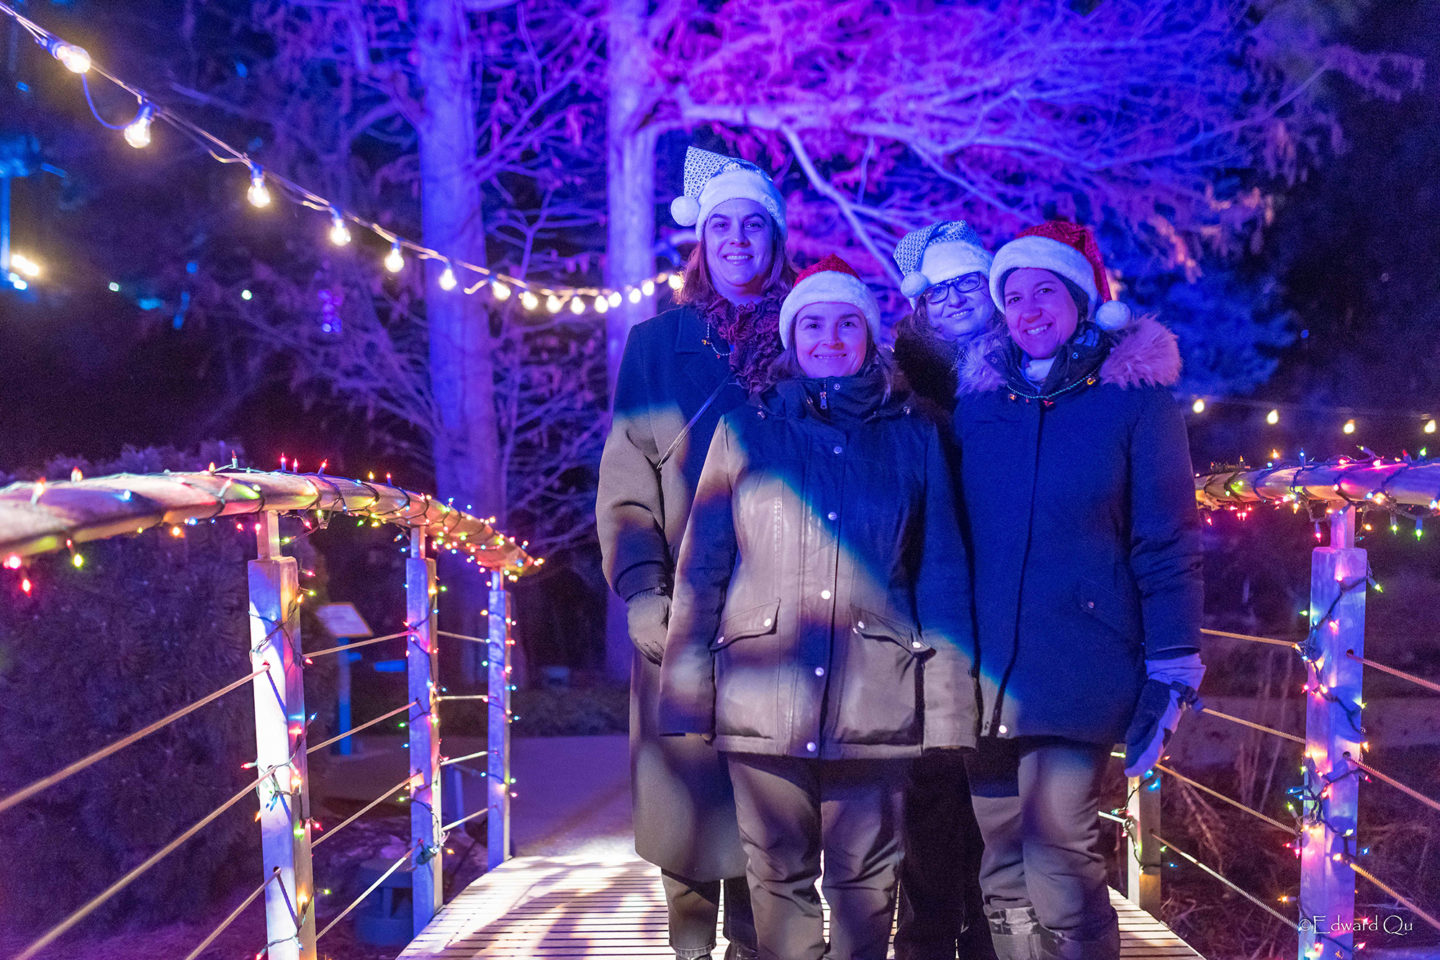 Save on Tickets to Winter Lights at the Rock Garden